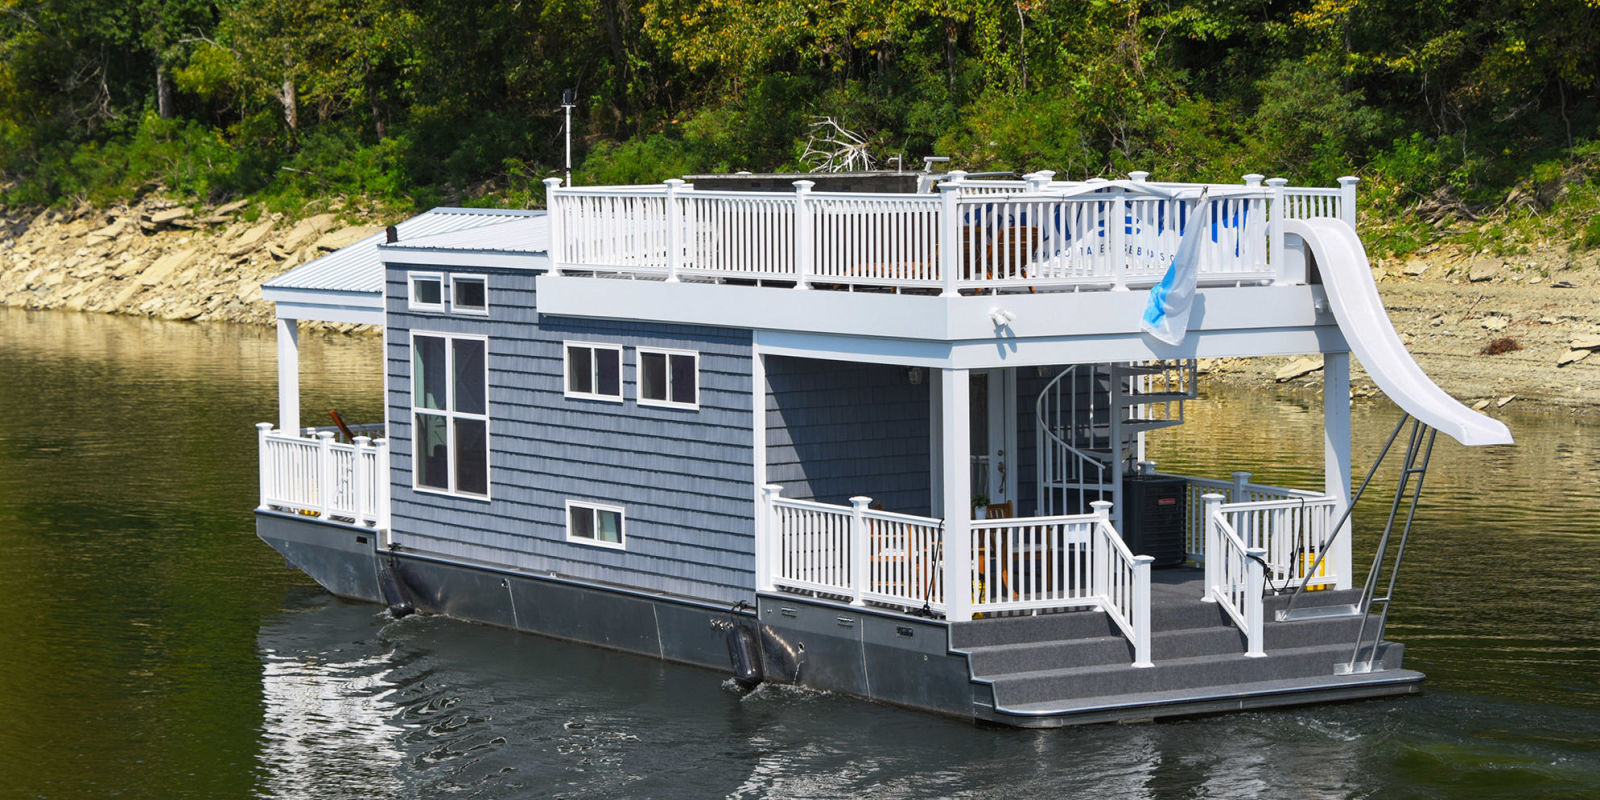 Tiny houseboat on water tiny houses for Building a floating home